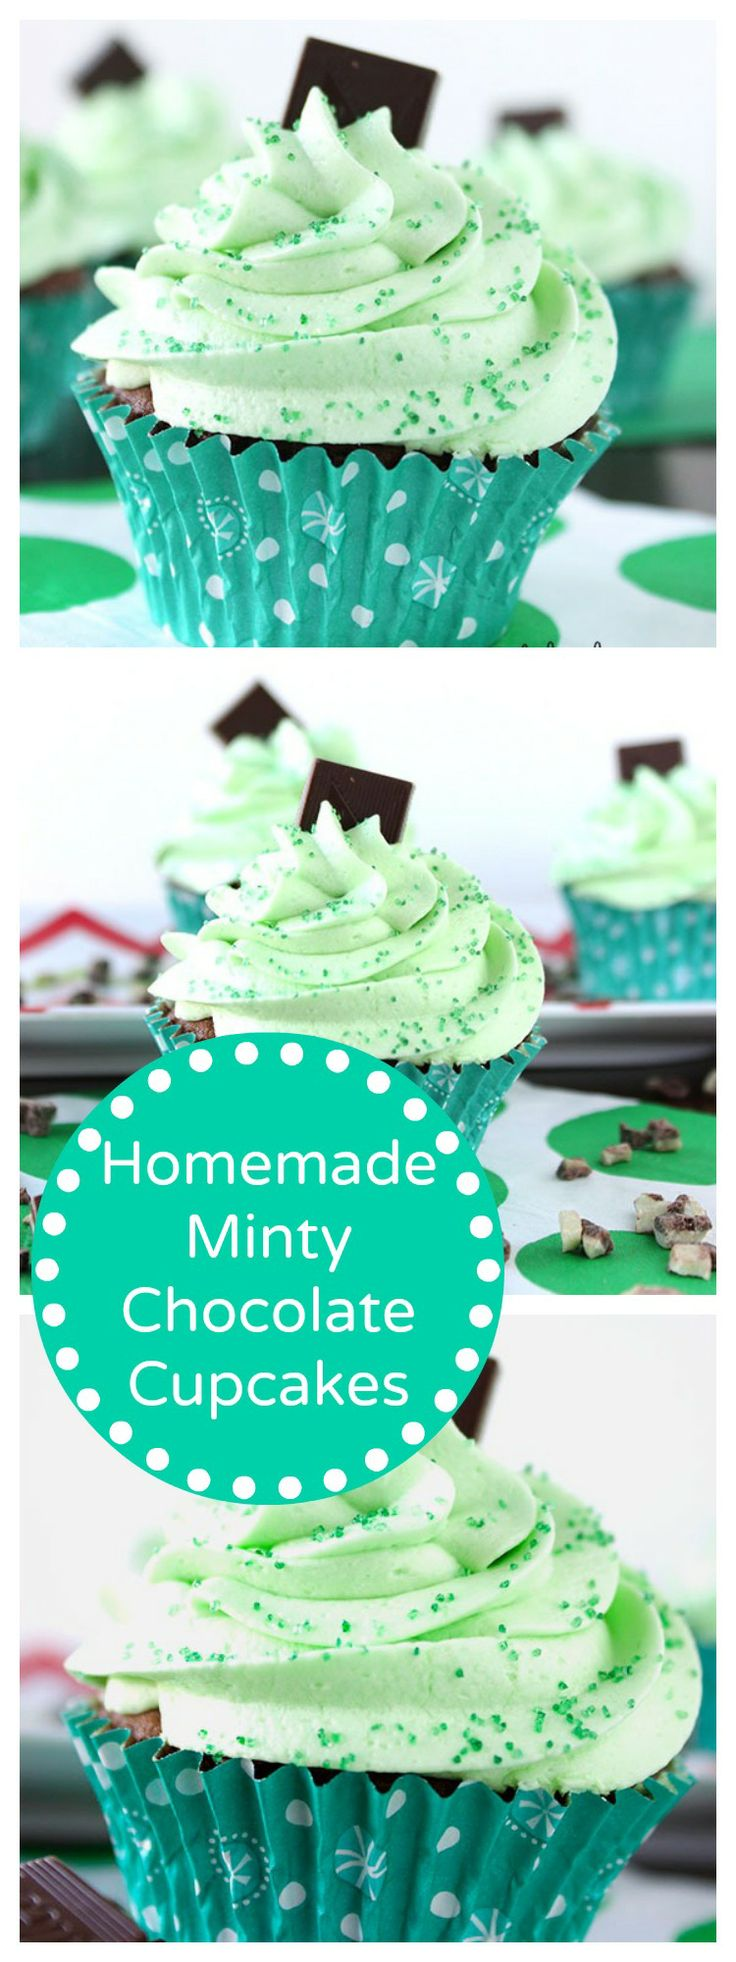 Homemade Minty Chocolate Cupcakes...♥♥...